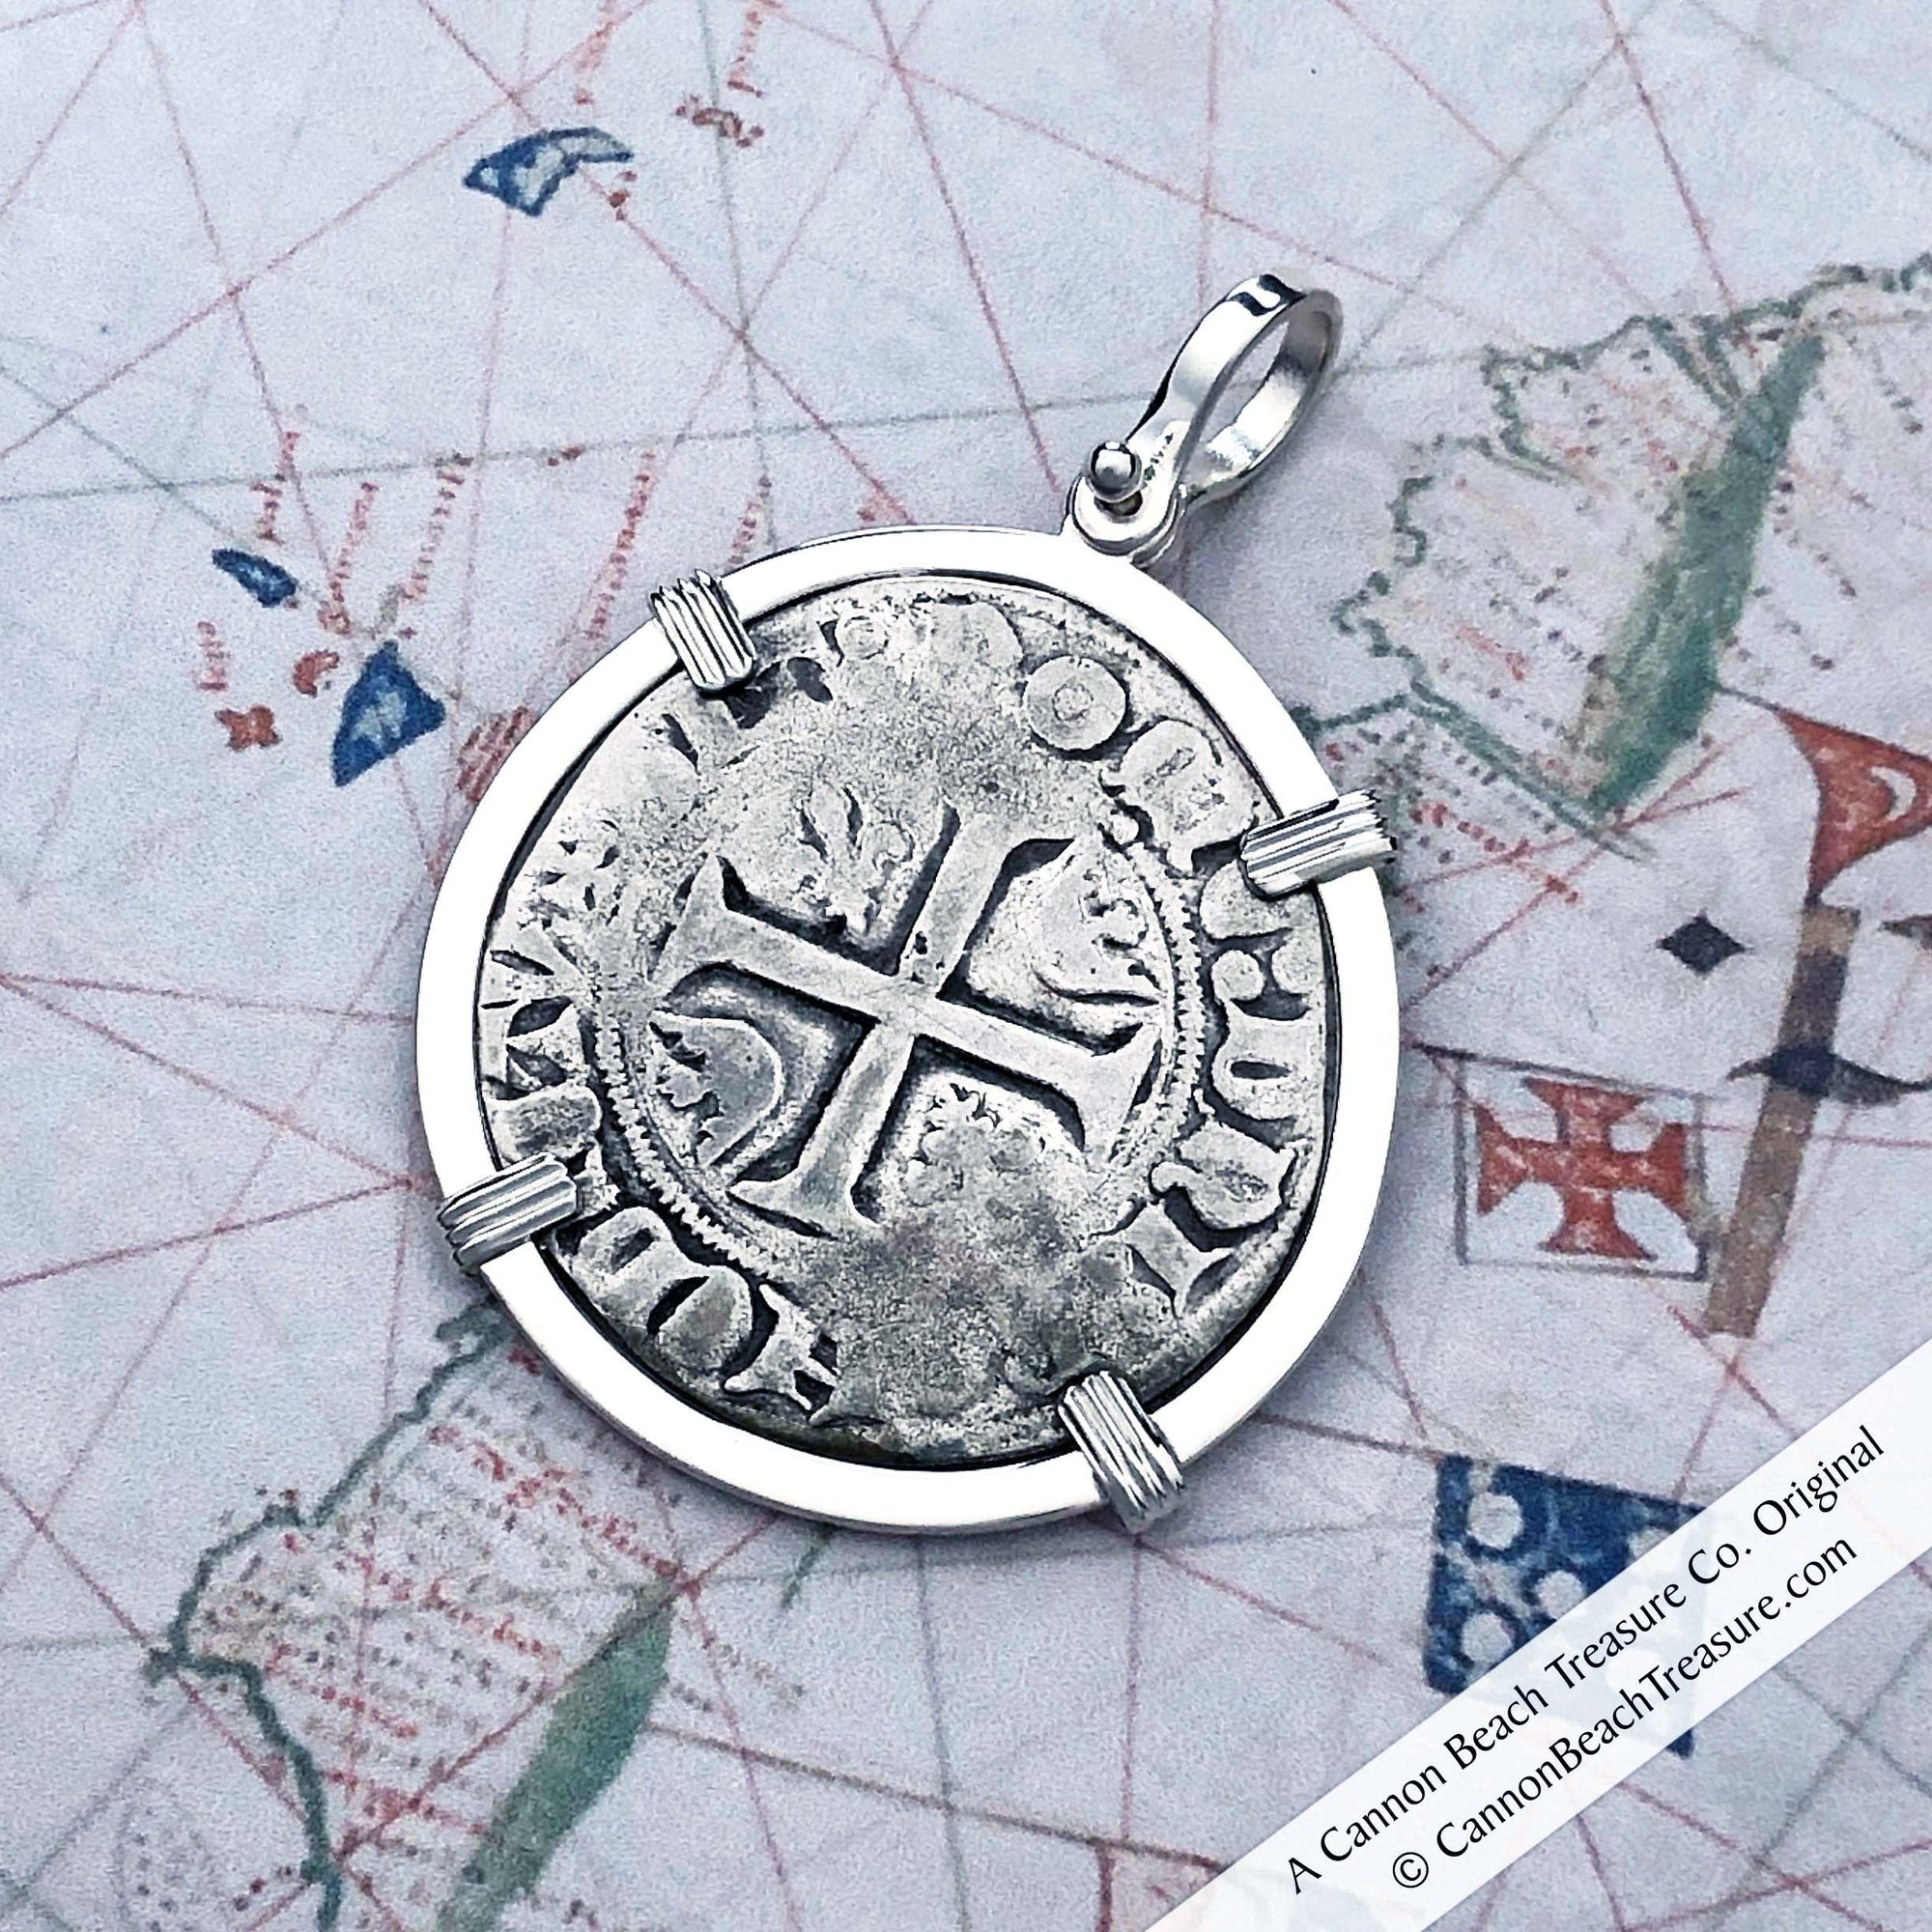 Medieval France Silver Guenar circa 1390 Crusader Cross Coin Sterling Pendant | Artifact #8622